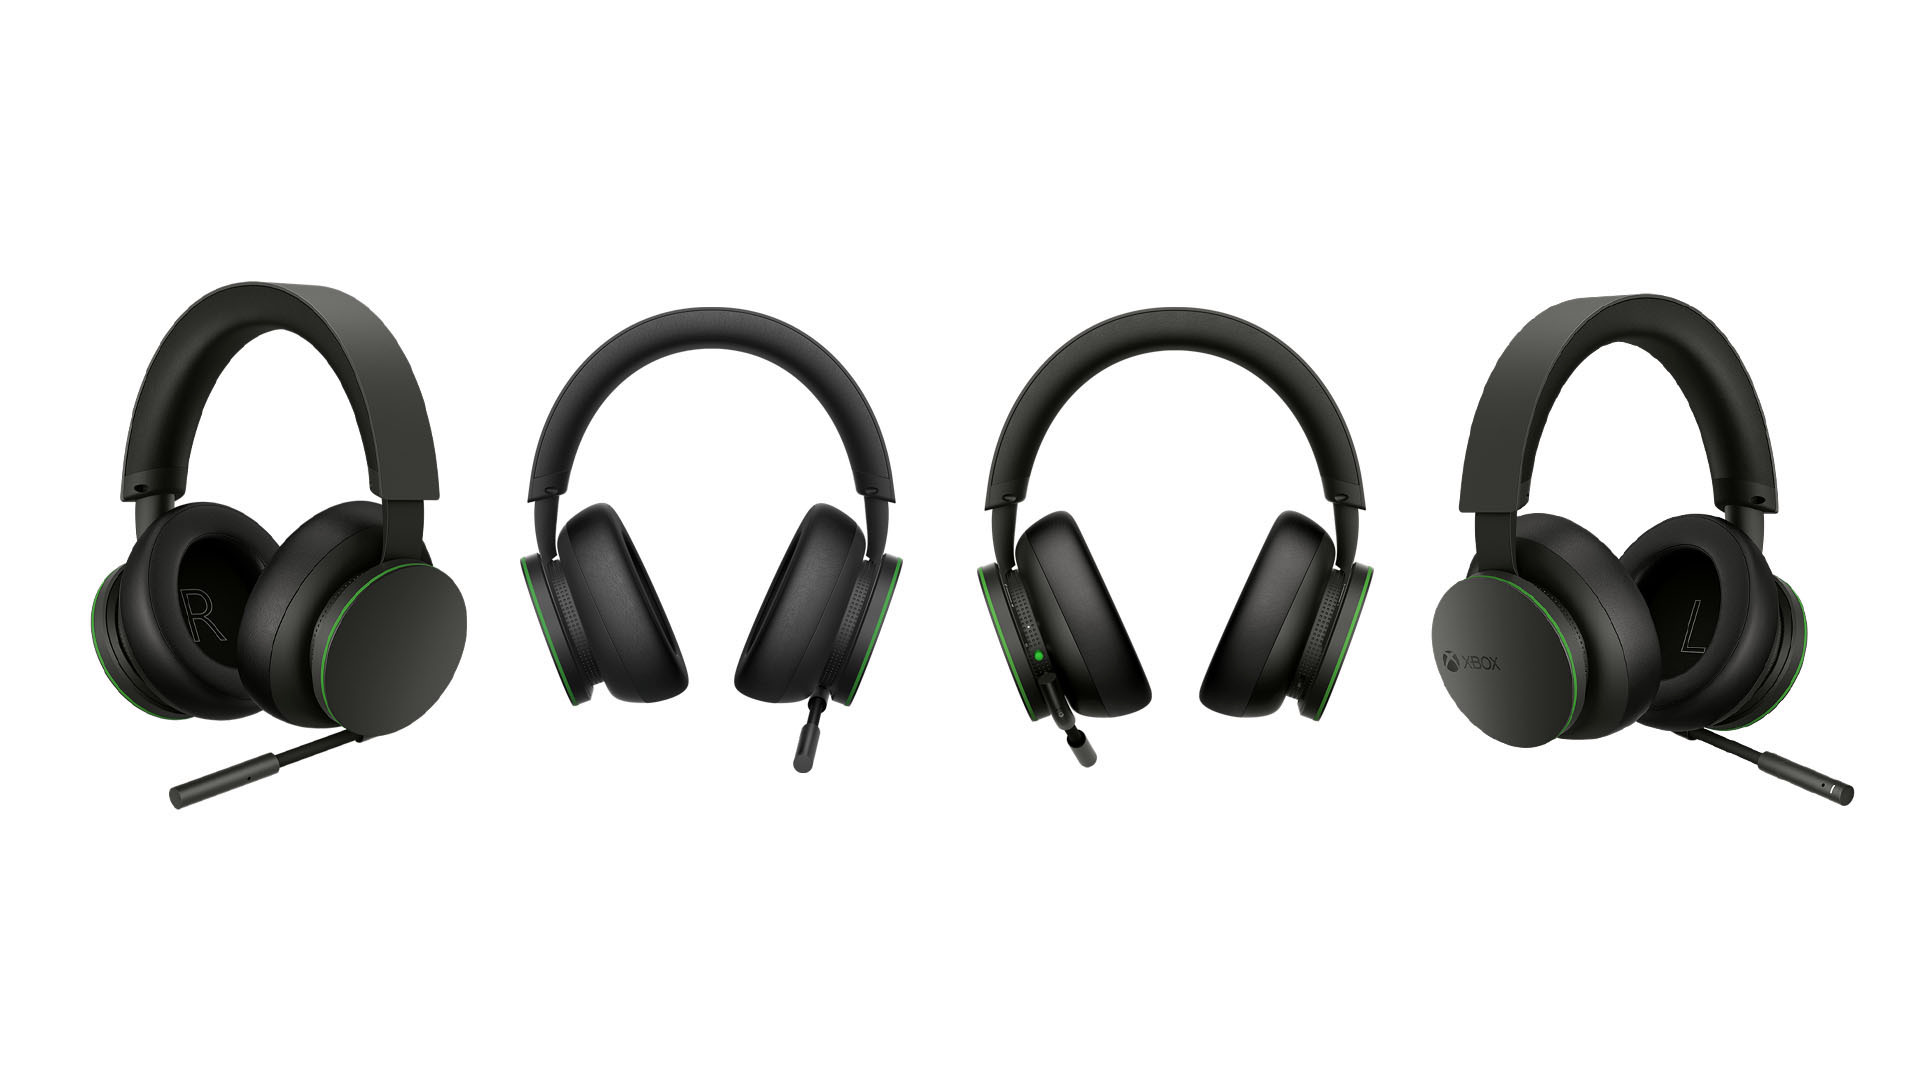 Xbox Wirless Headset Renders